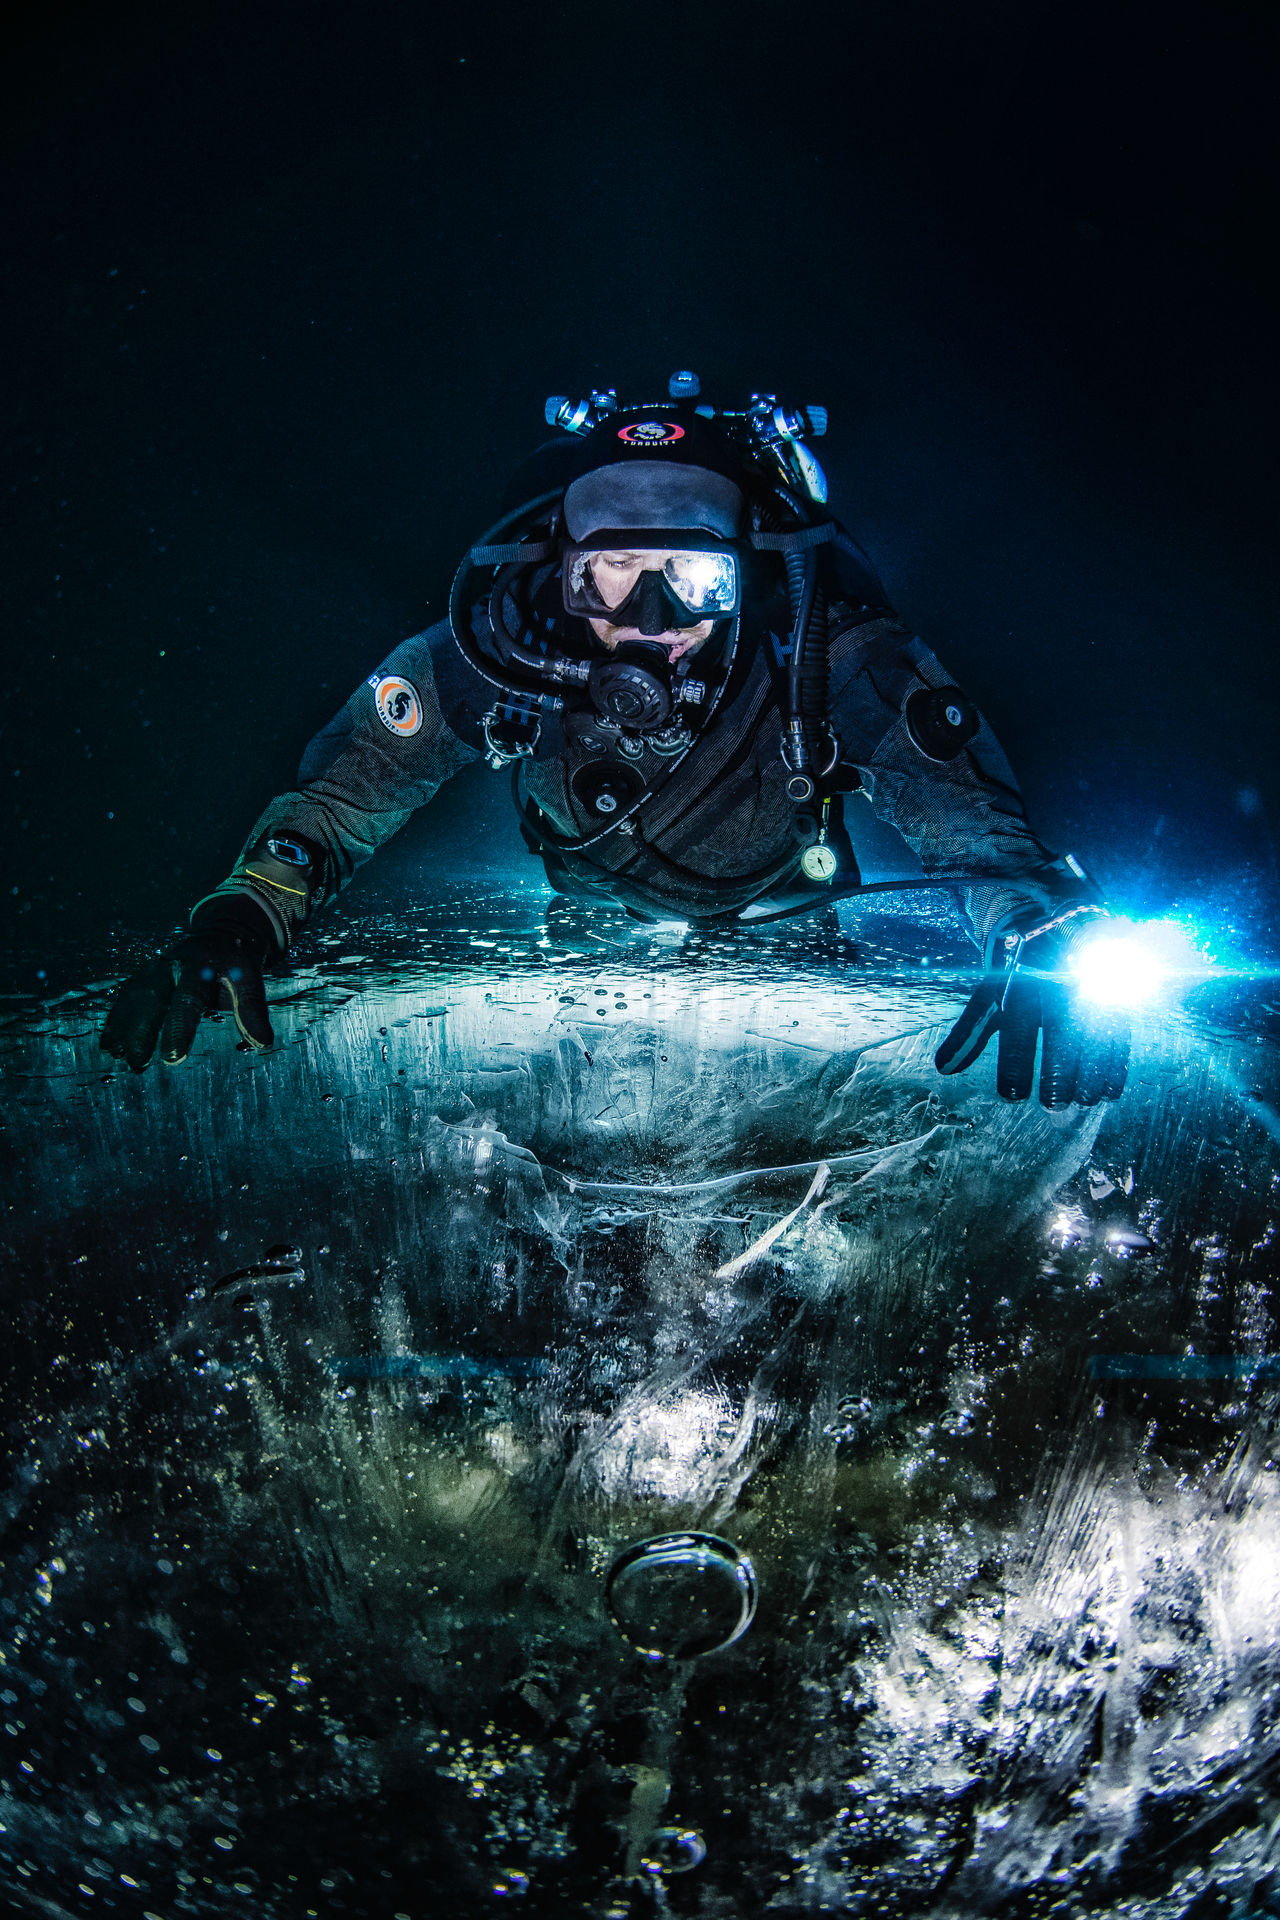 Other side of the Frozen Lake Abstract Cold Dive Diver Diving Diving Equipment Drysuit Equipment Frozen Ice Lake Landscape Nature Ocean Reflection SCUBA Scuba Diver Scuba Diving Scuba Gear Scubadiving Sea Underwater Water Water Reflections Winter